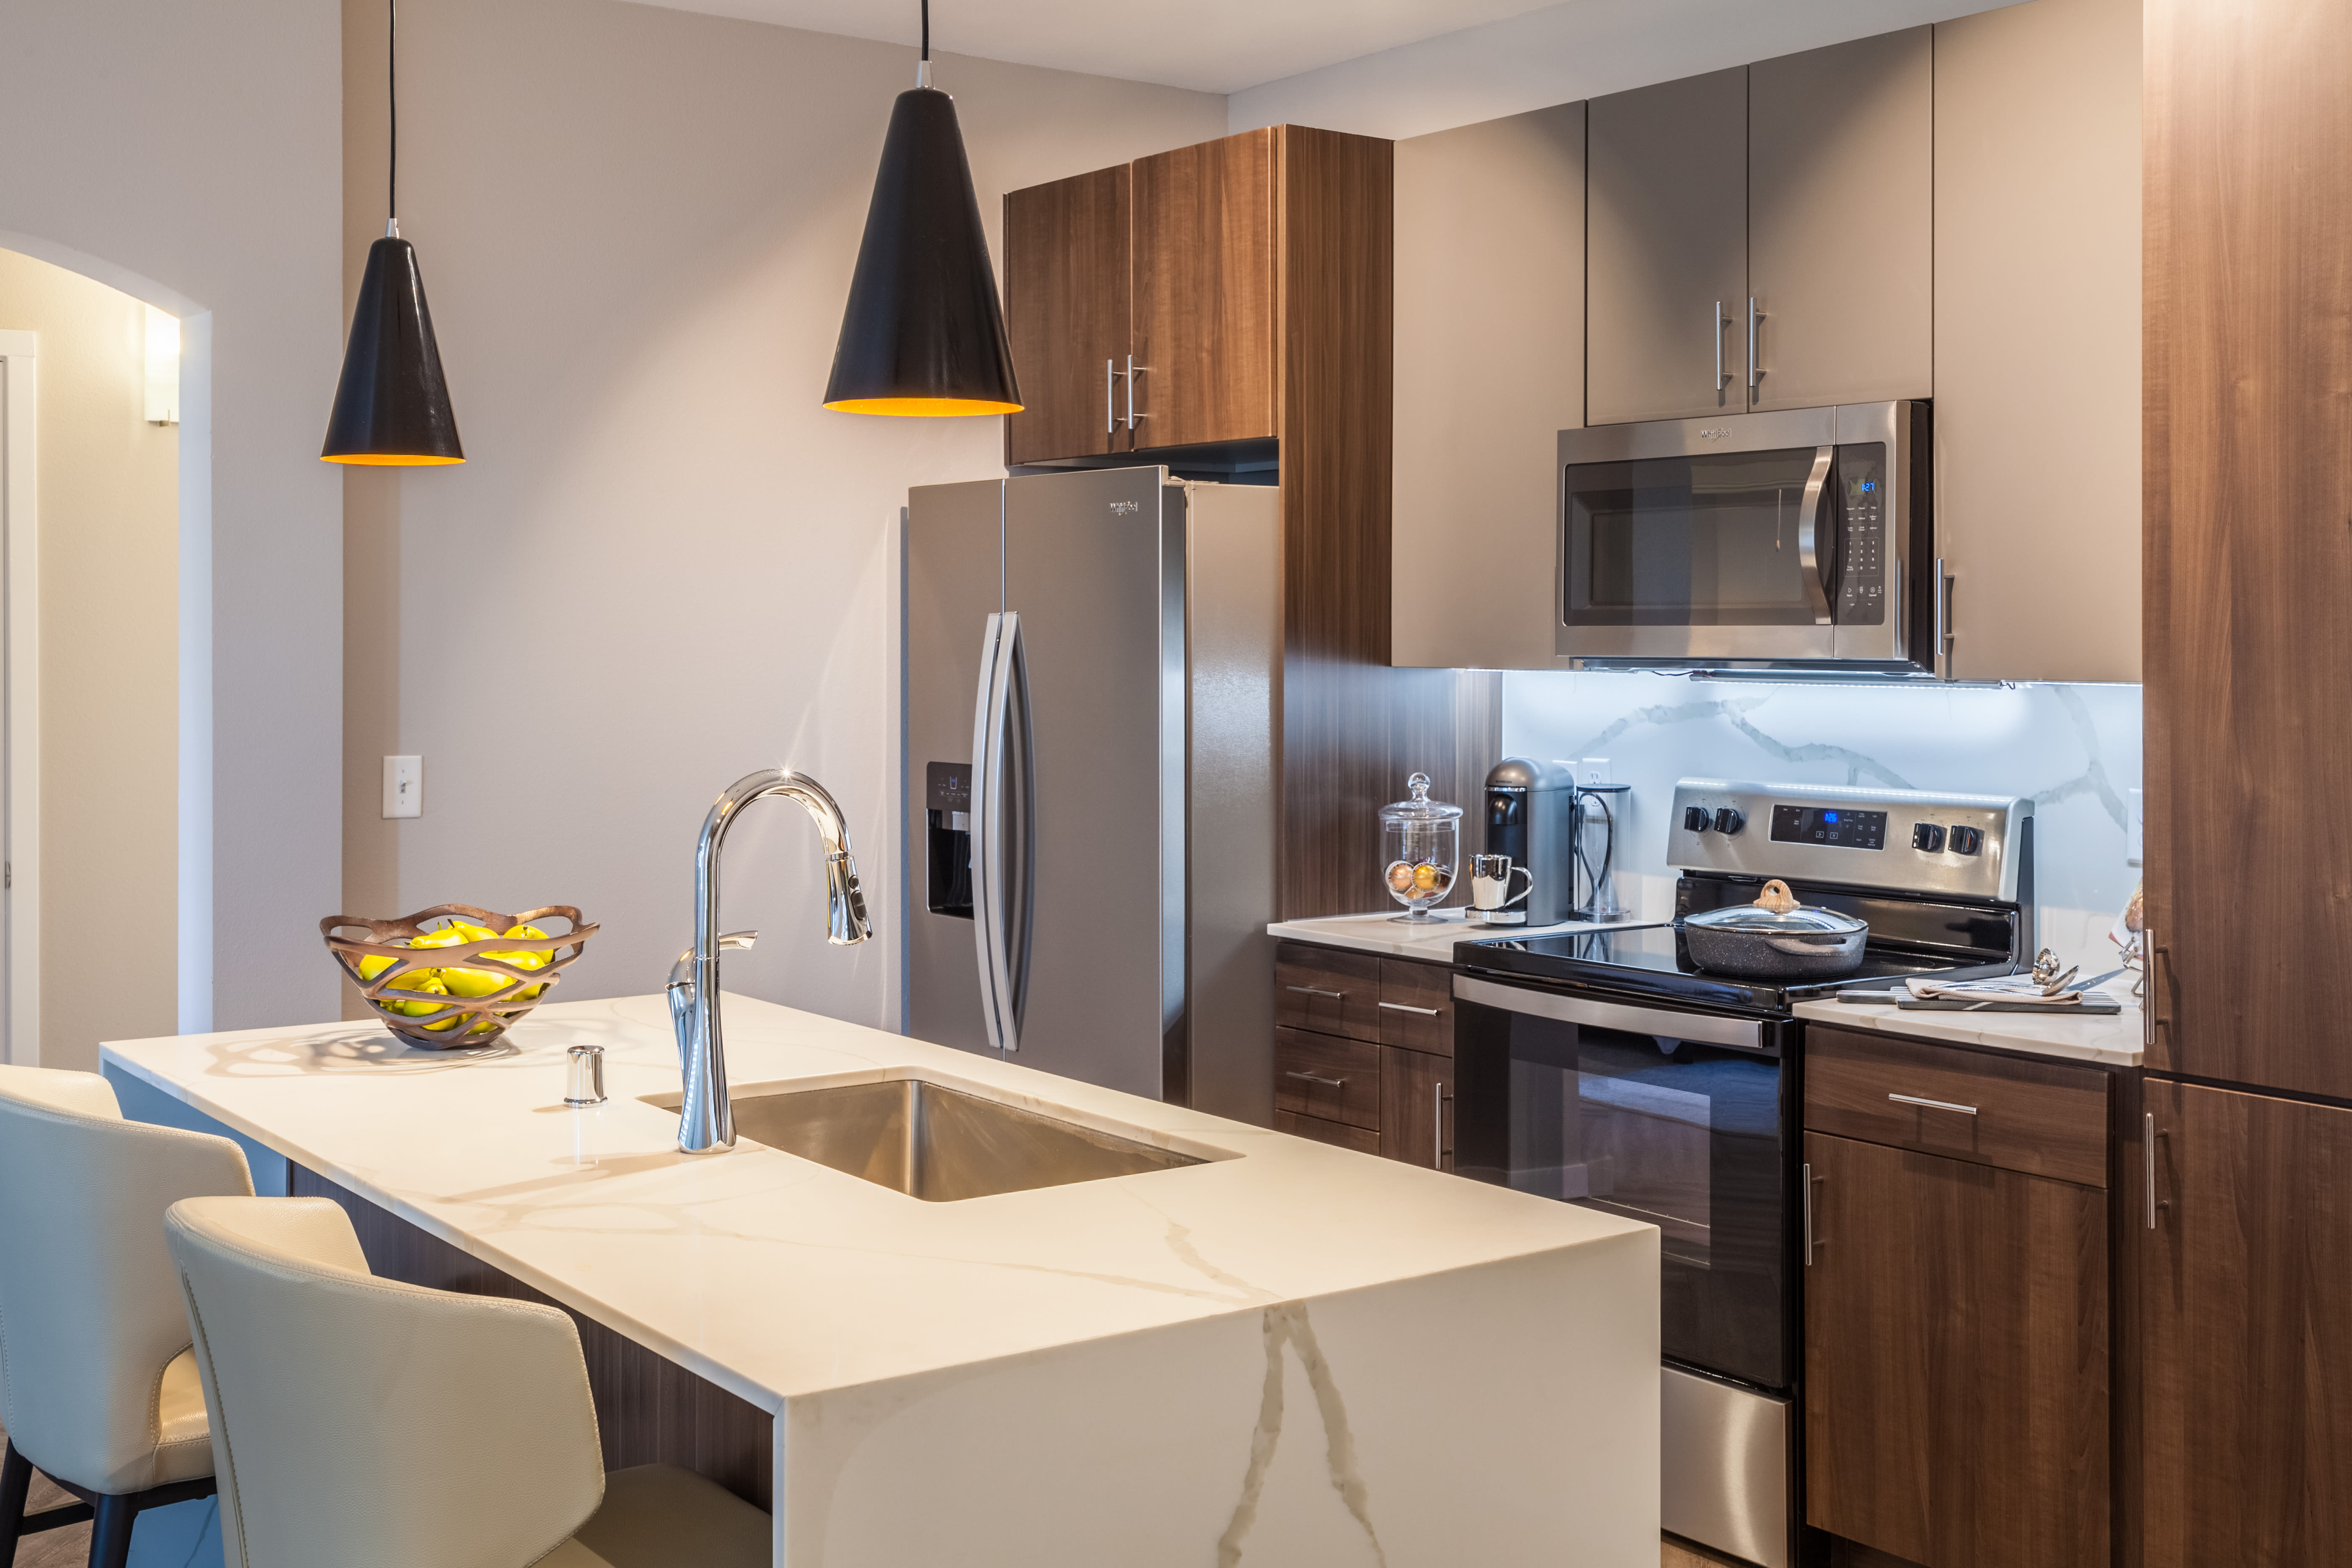 Stainless-steel appliances and an island in a model home's kitchen at Olympus Alameda in Albuquerque, New Mexico